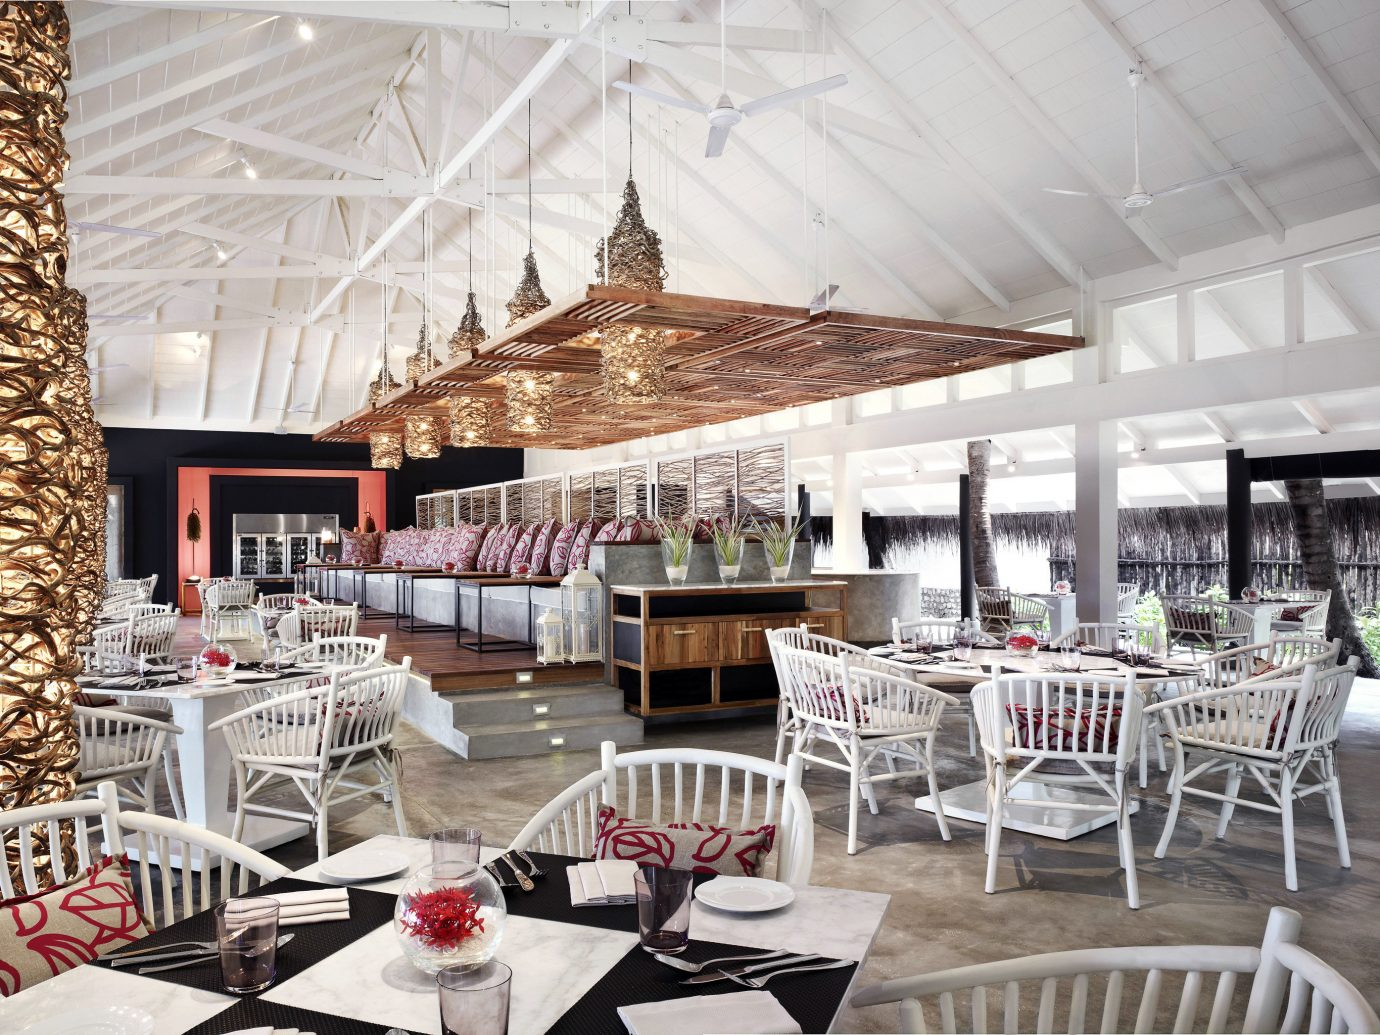 Beachfront Dining Drink Eat Family Hotels Resort table chair indoor ceiling meal room restaurant function hall estate interior design banquet wedding reception ballroom area furniture